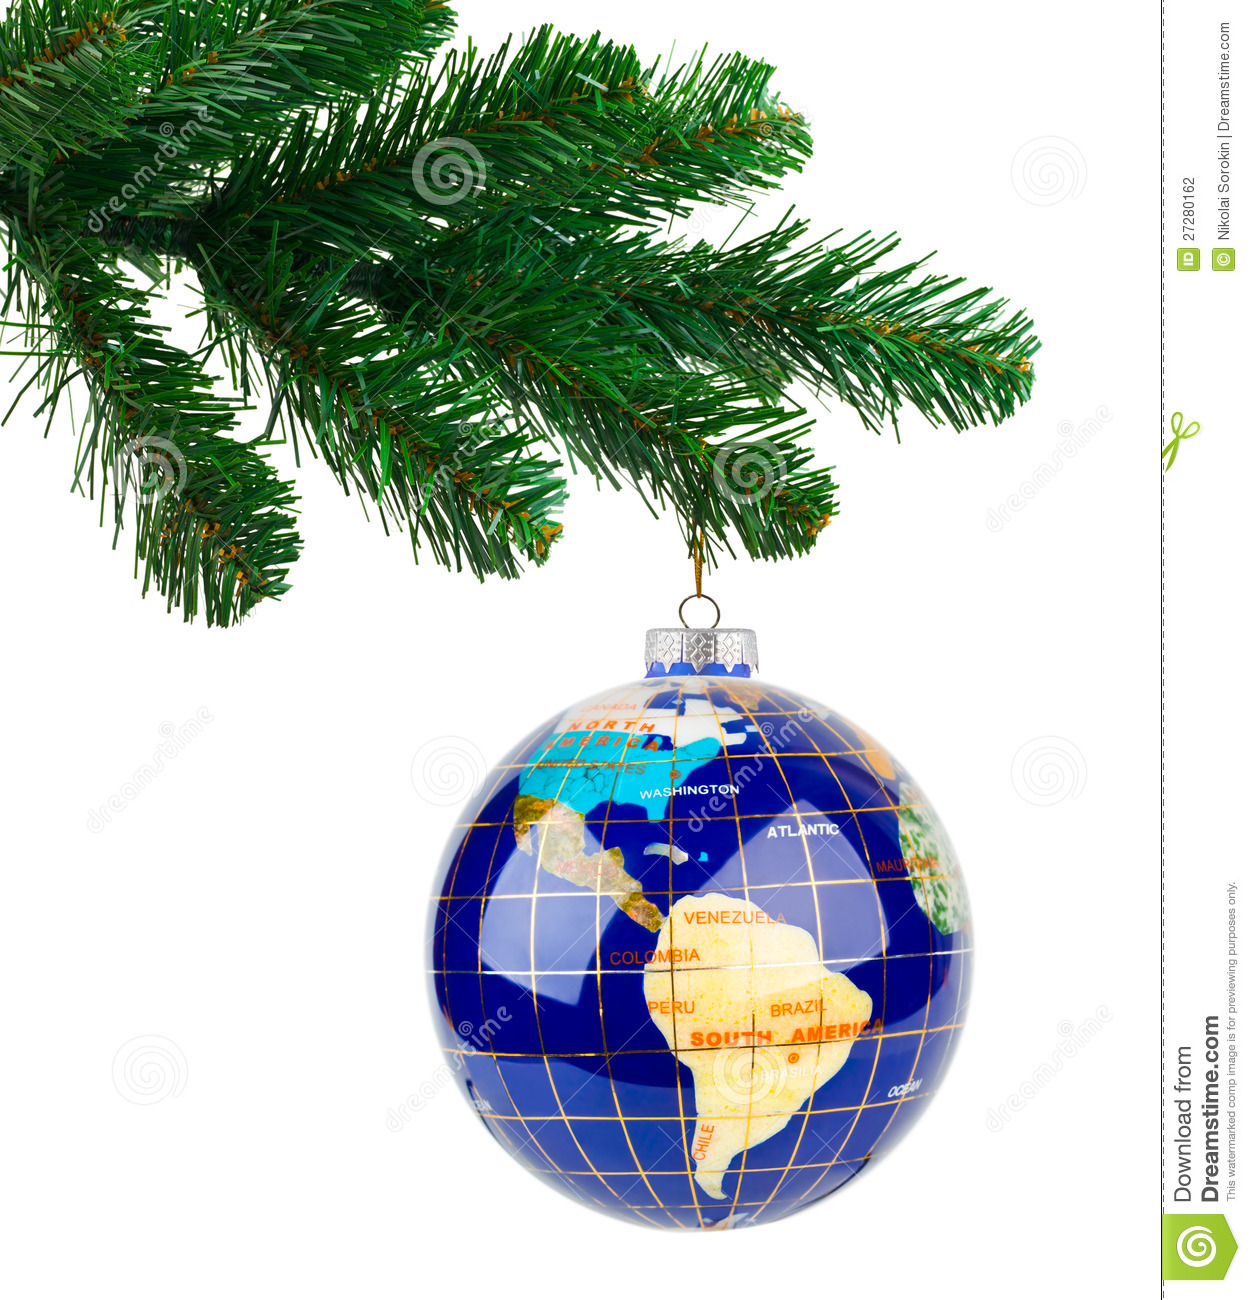 World globe christmas ornaments - Globe And Christmas Tree